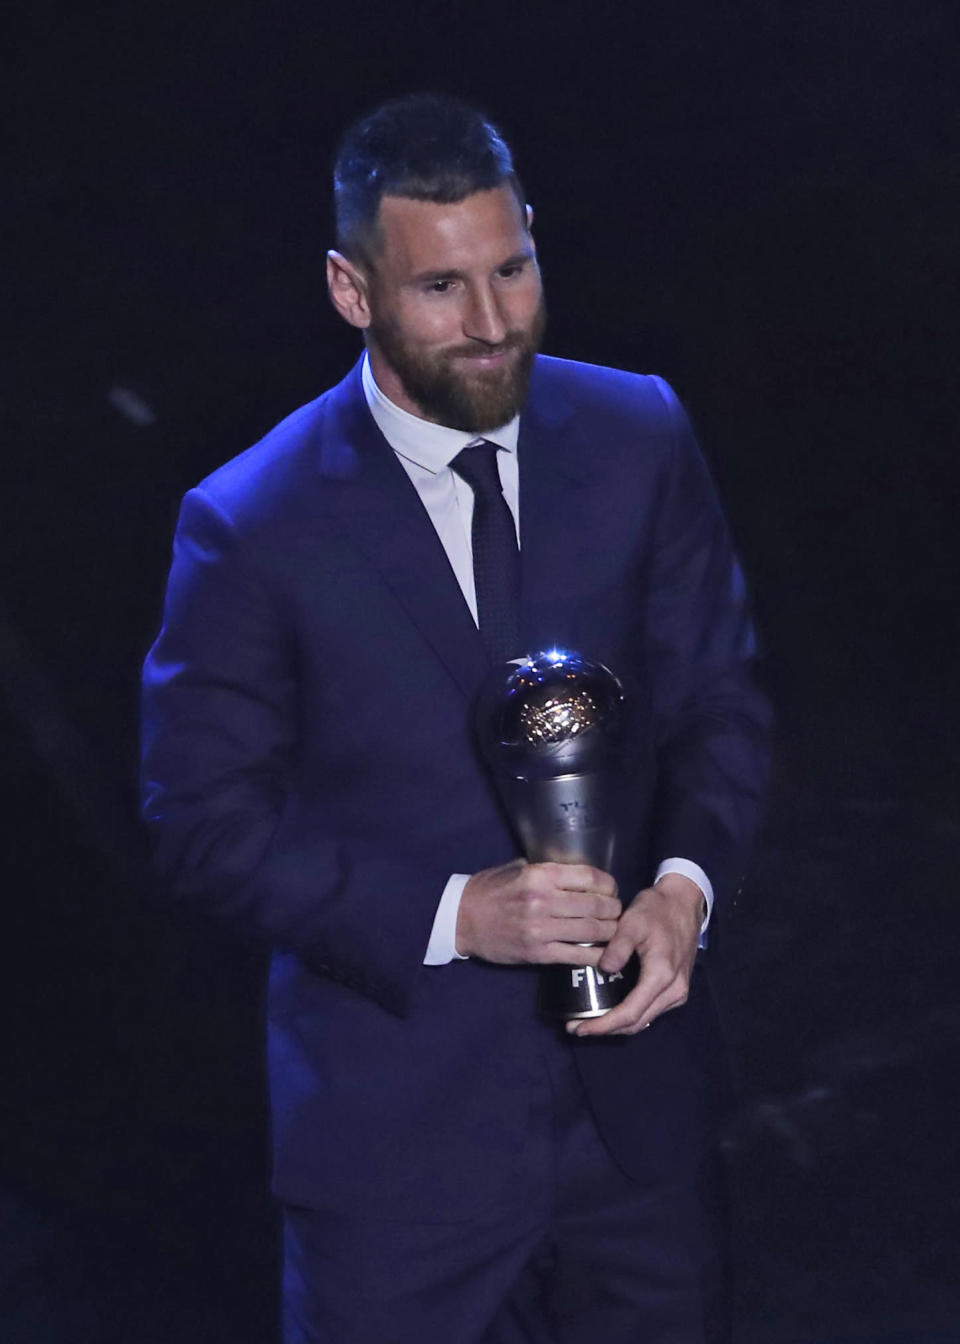 Argentinian Barcelona player Lionel Messi receives the Best FIFA mens player award during the ceremony of the Best FIFA Football Awards, in Milan's La Scala theater, northern Italy, Monday, Sept. 23, 2019. (AP Photo/Antonio Calanni)